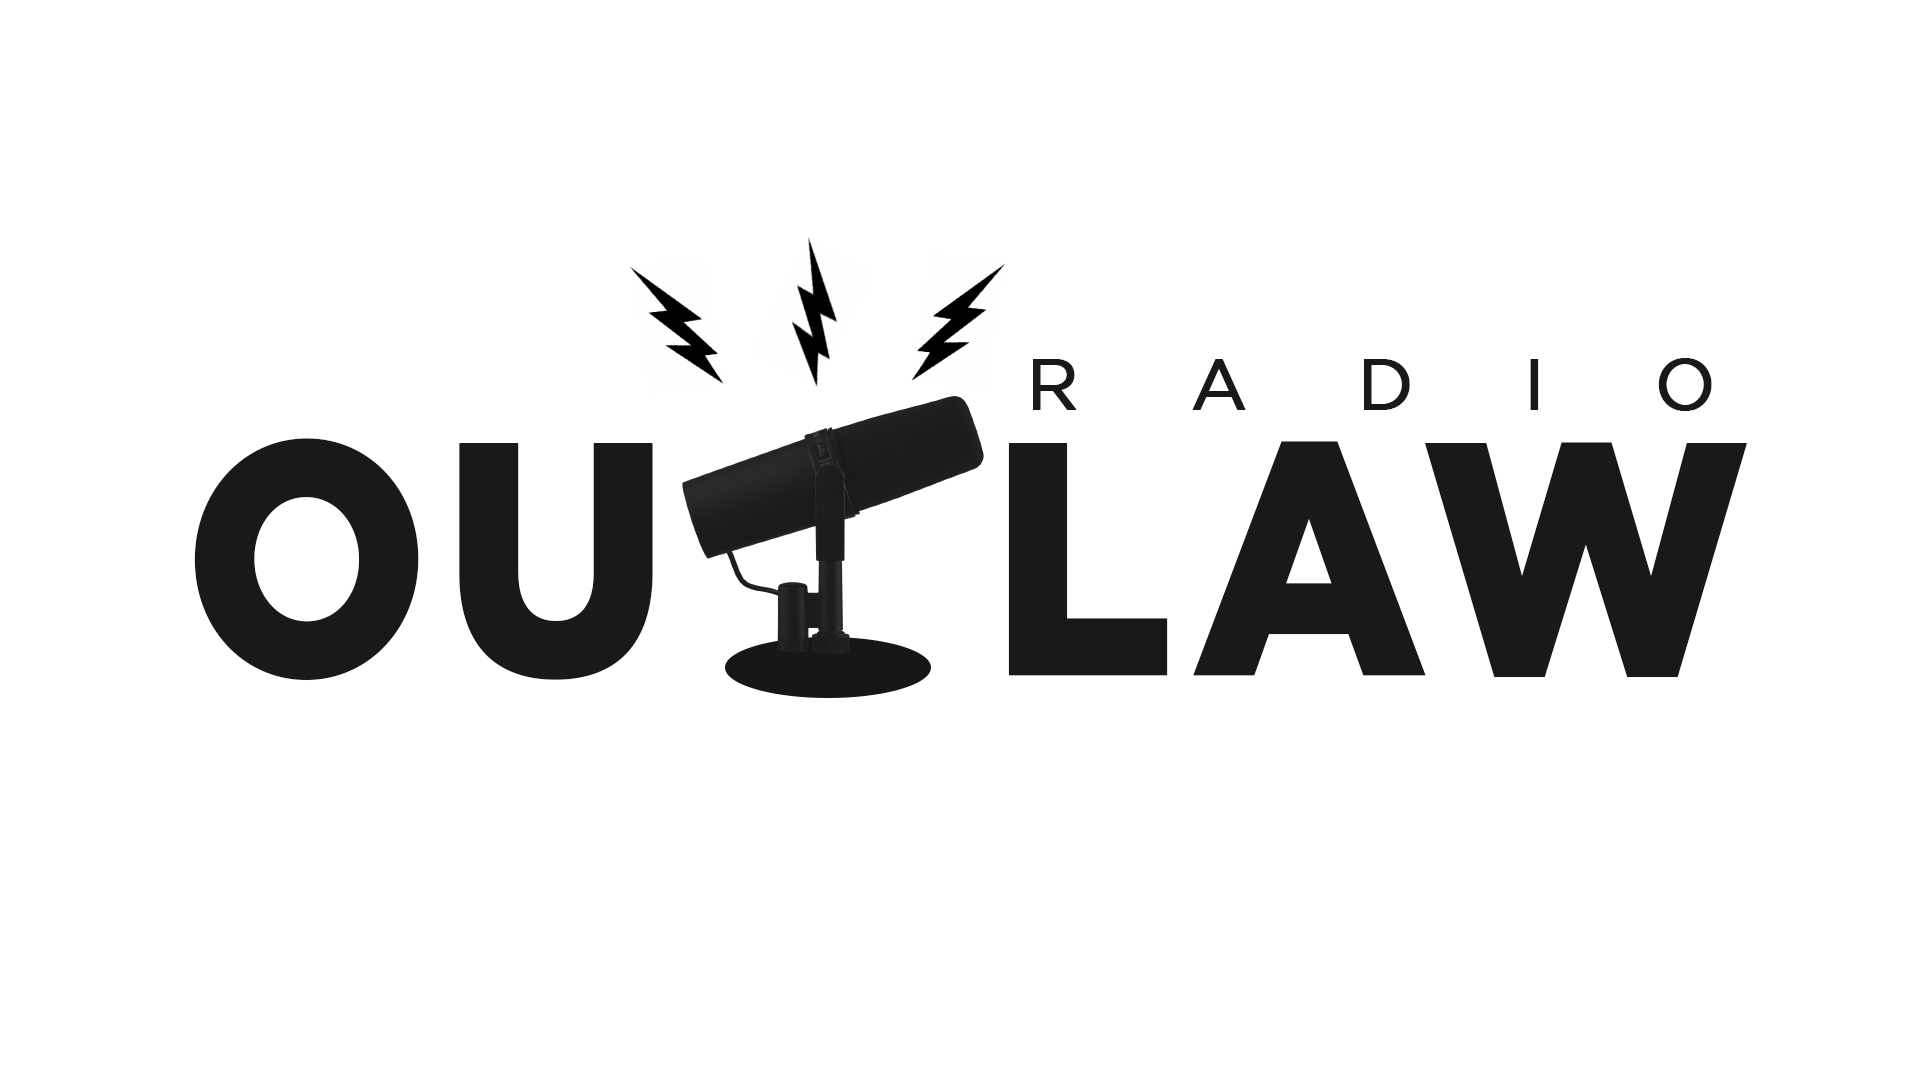 OutlawRadio